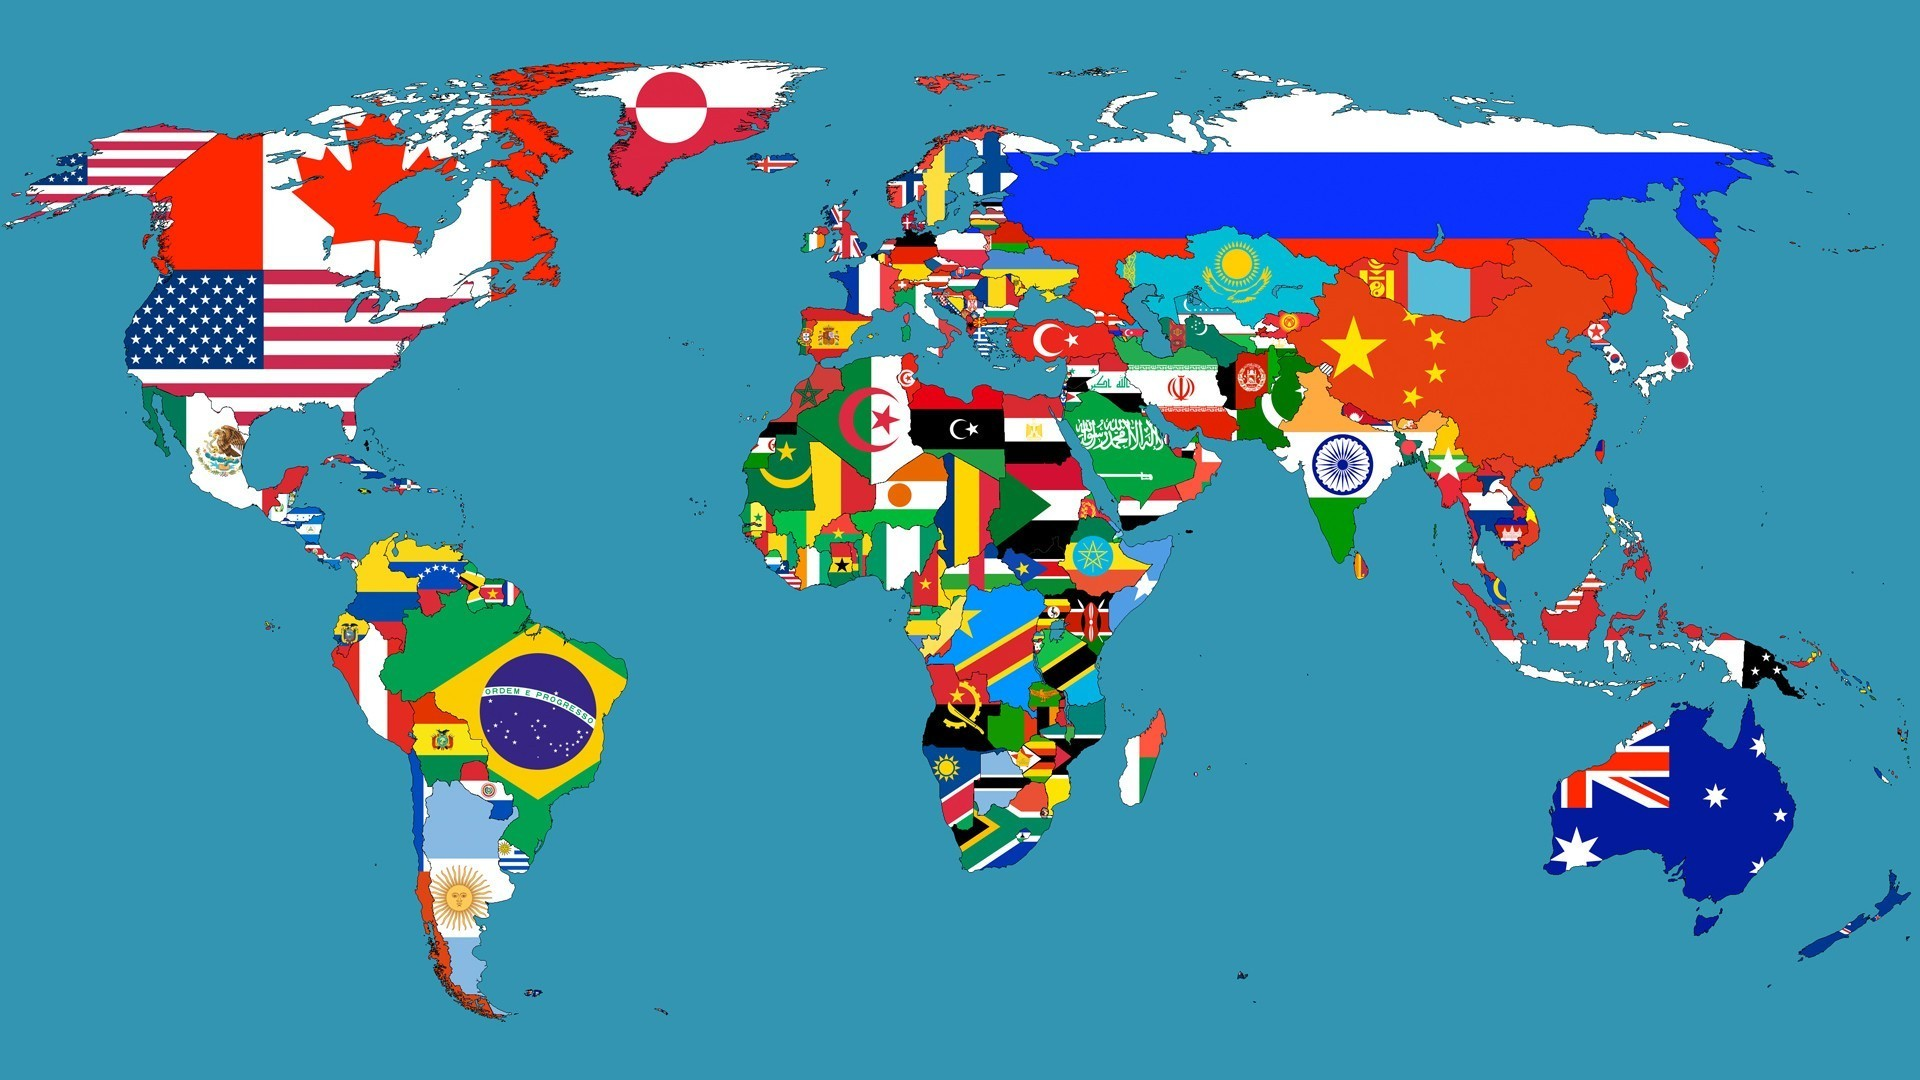 World 2b3d 2bmap for 3d map of the world hd world map awesome 3d 3d world map with countries modele cou hd world map wallpaper wallpapersafari gumiabroncs Gallery